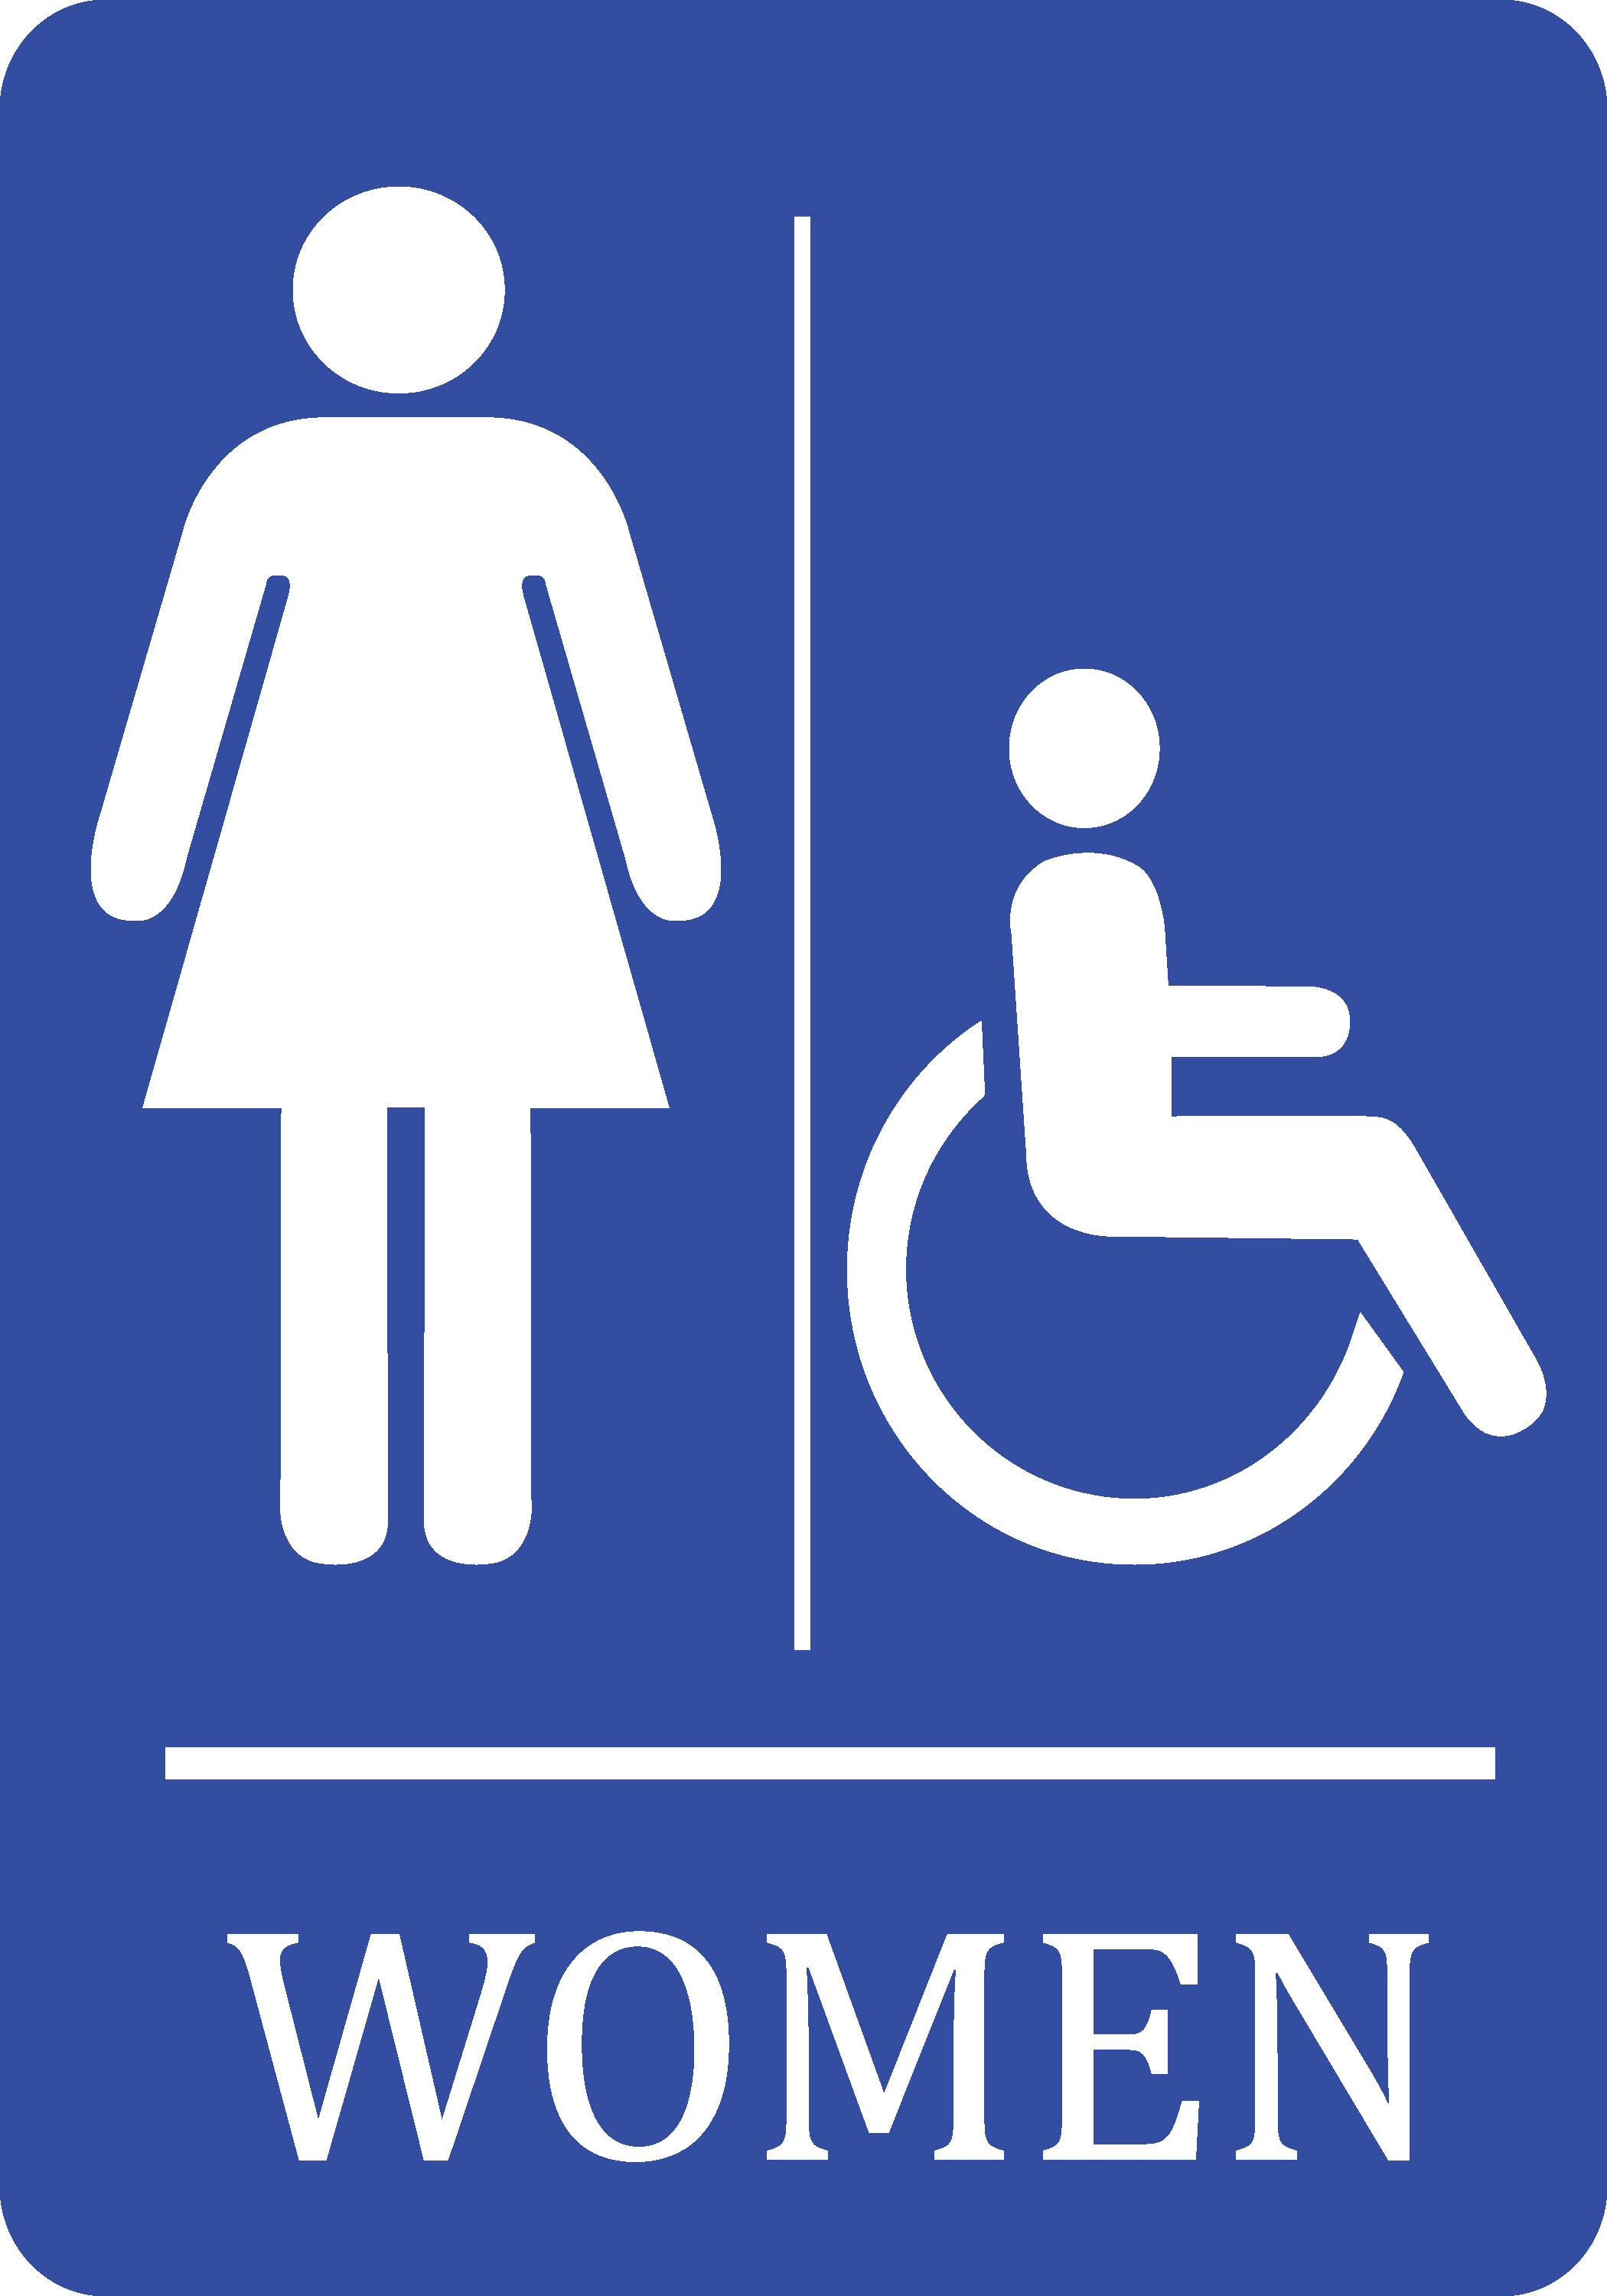 Women Handicap Accessible Bathroom Blue Sign   Woman Restroom Signs    Aluminum Metal, 12x18